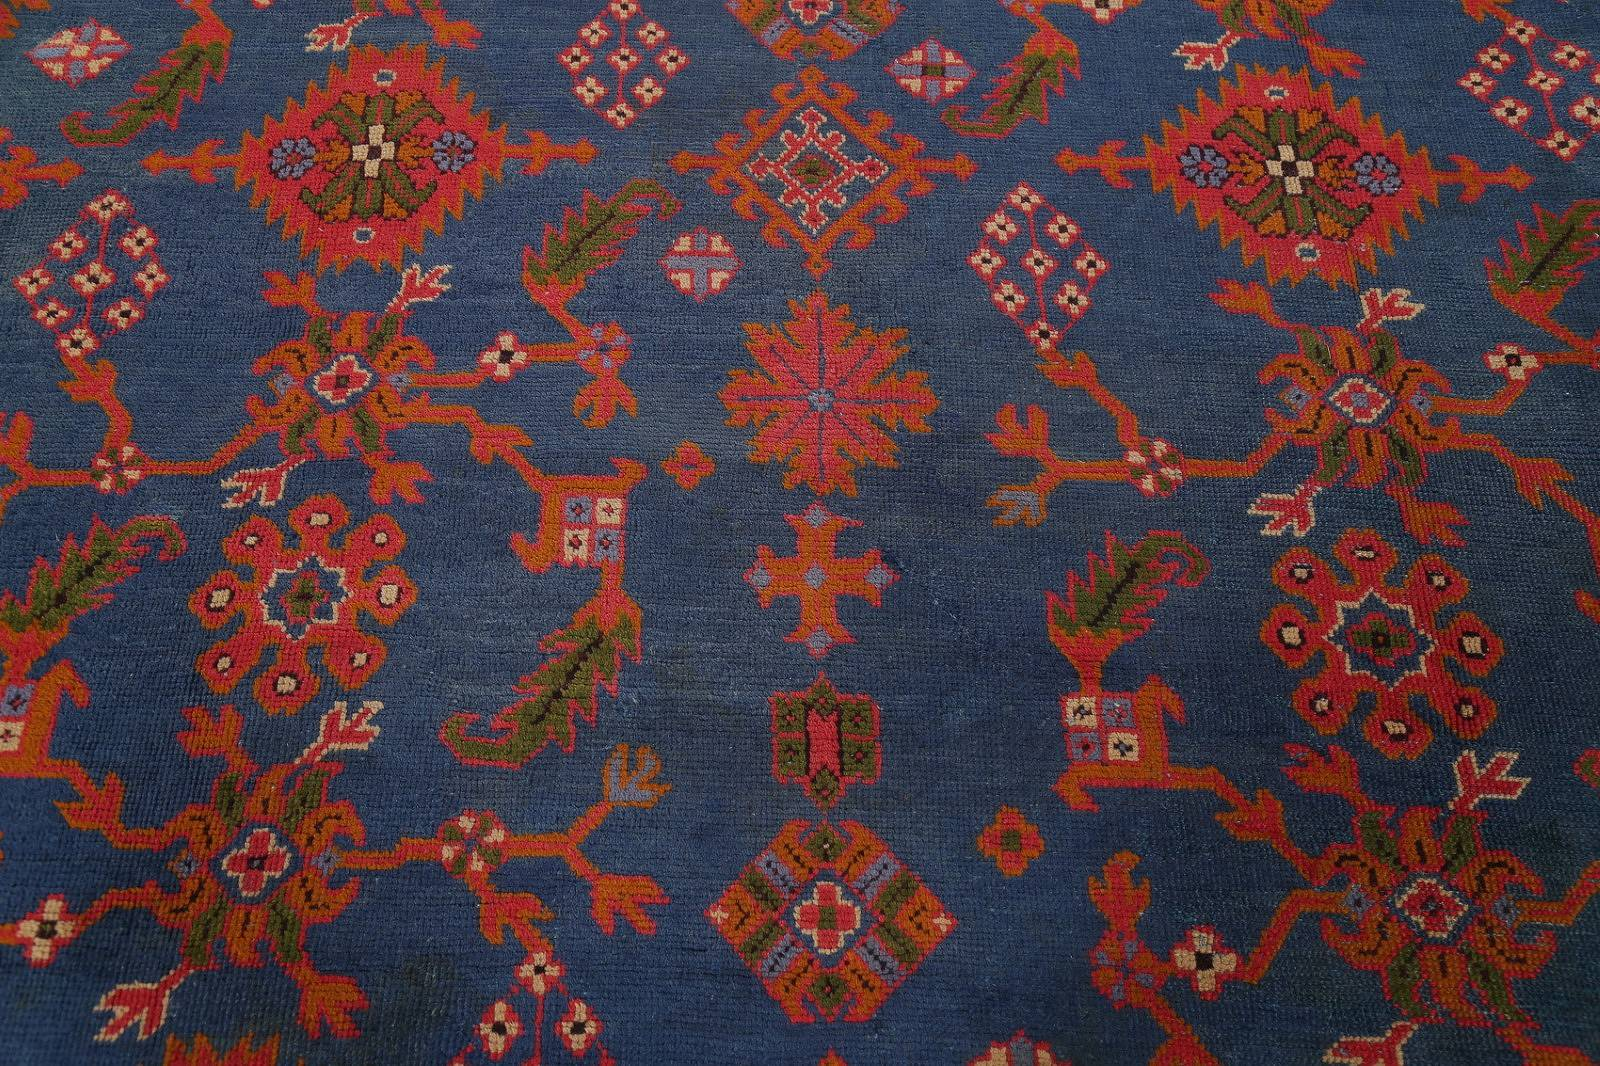 Antique Vegetable Dye Oushak Turkish Hand-Knotted Area Rug Wool 11x16